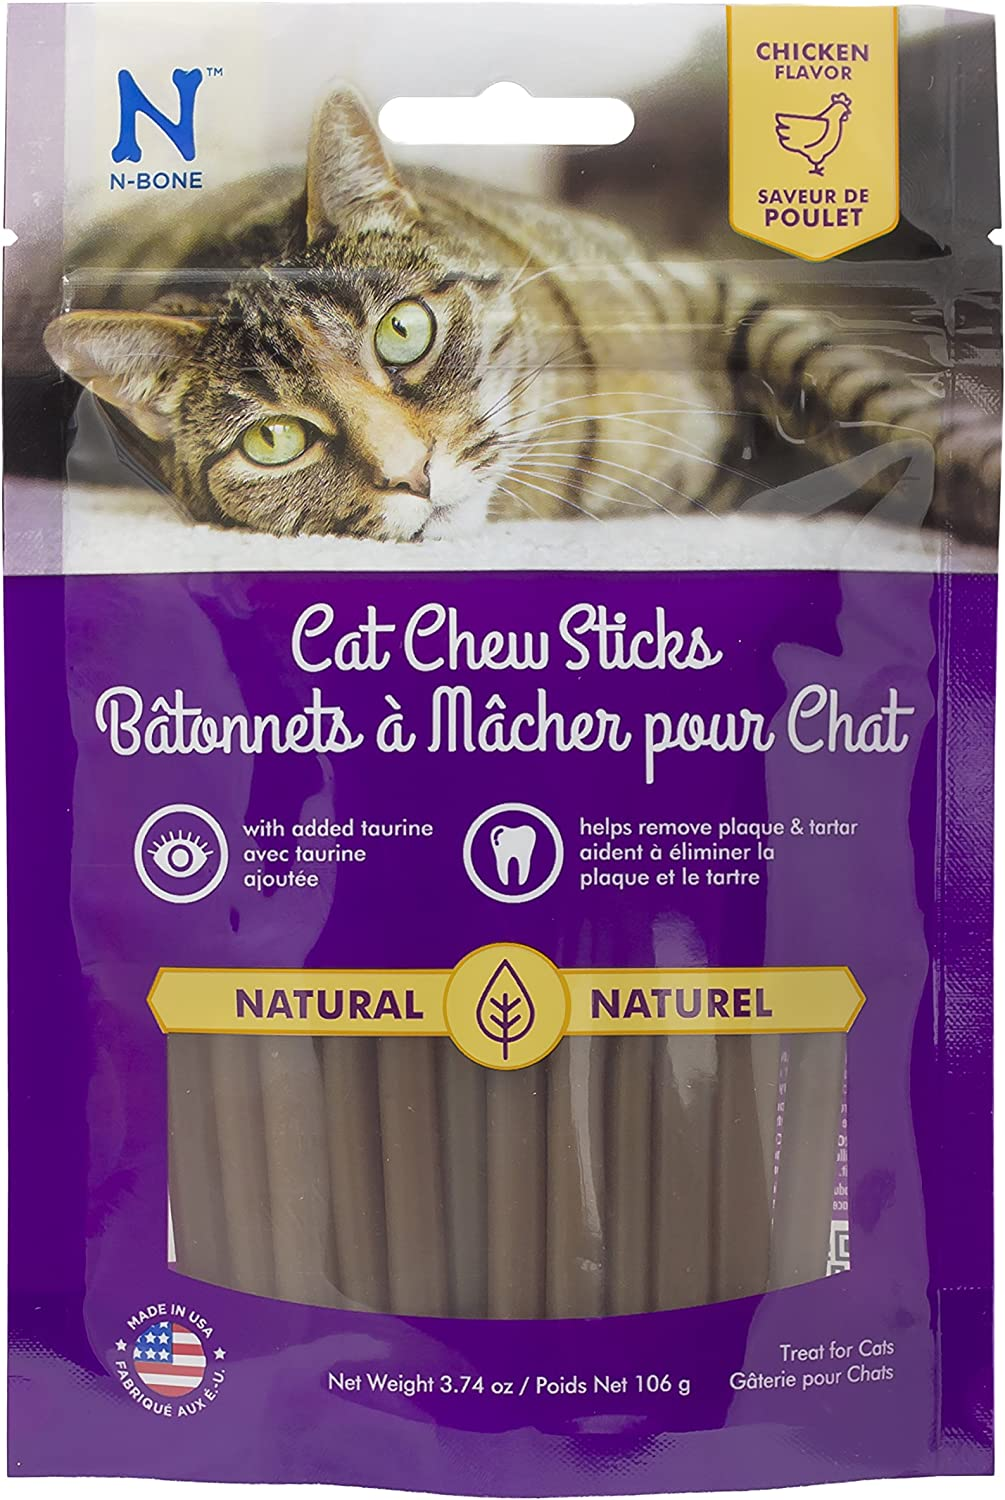 N-Bone Cat Chew Treats